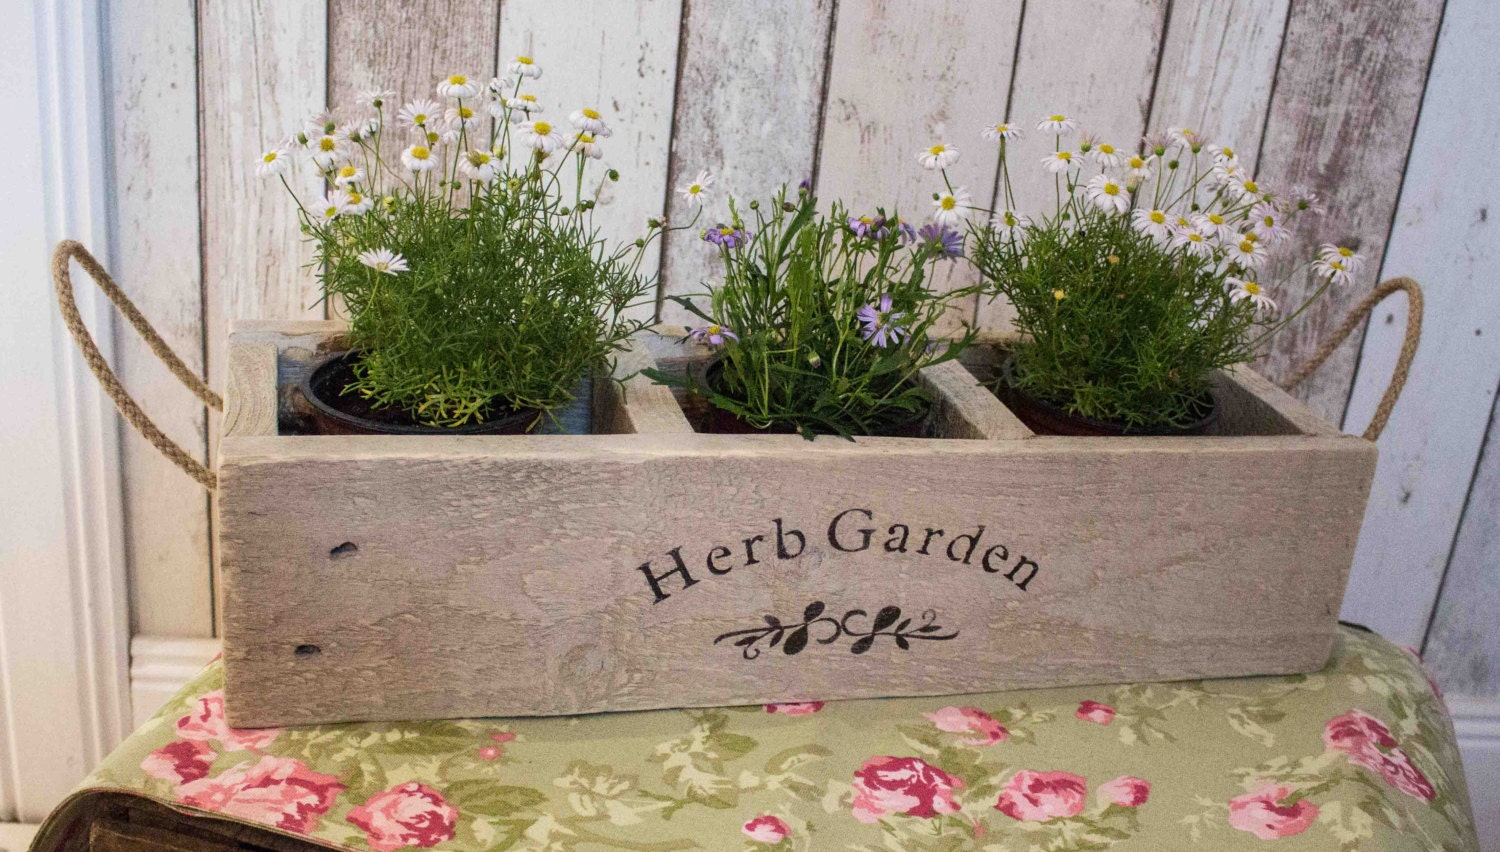 Herb Planter Cool Herb Planter Wooden Planter Window Box Herb Garden Herbs Design Ideas